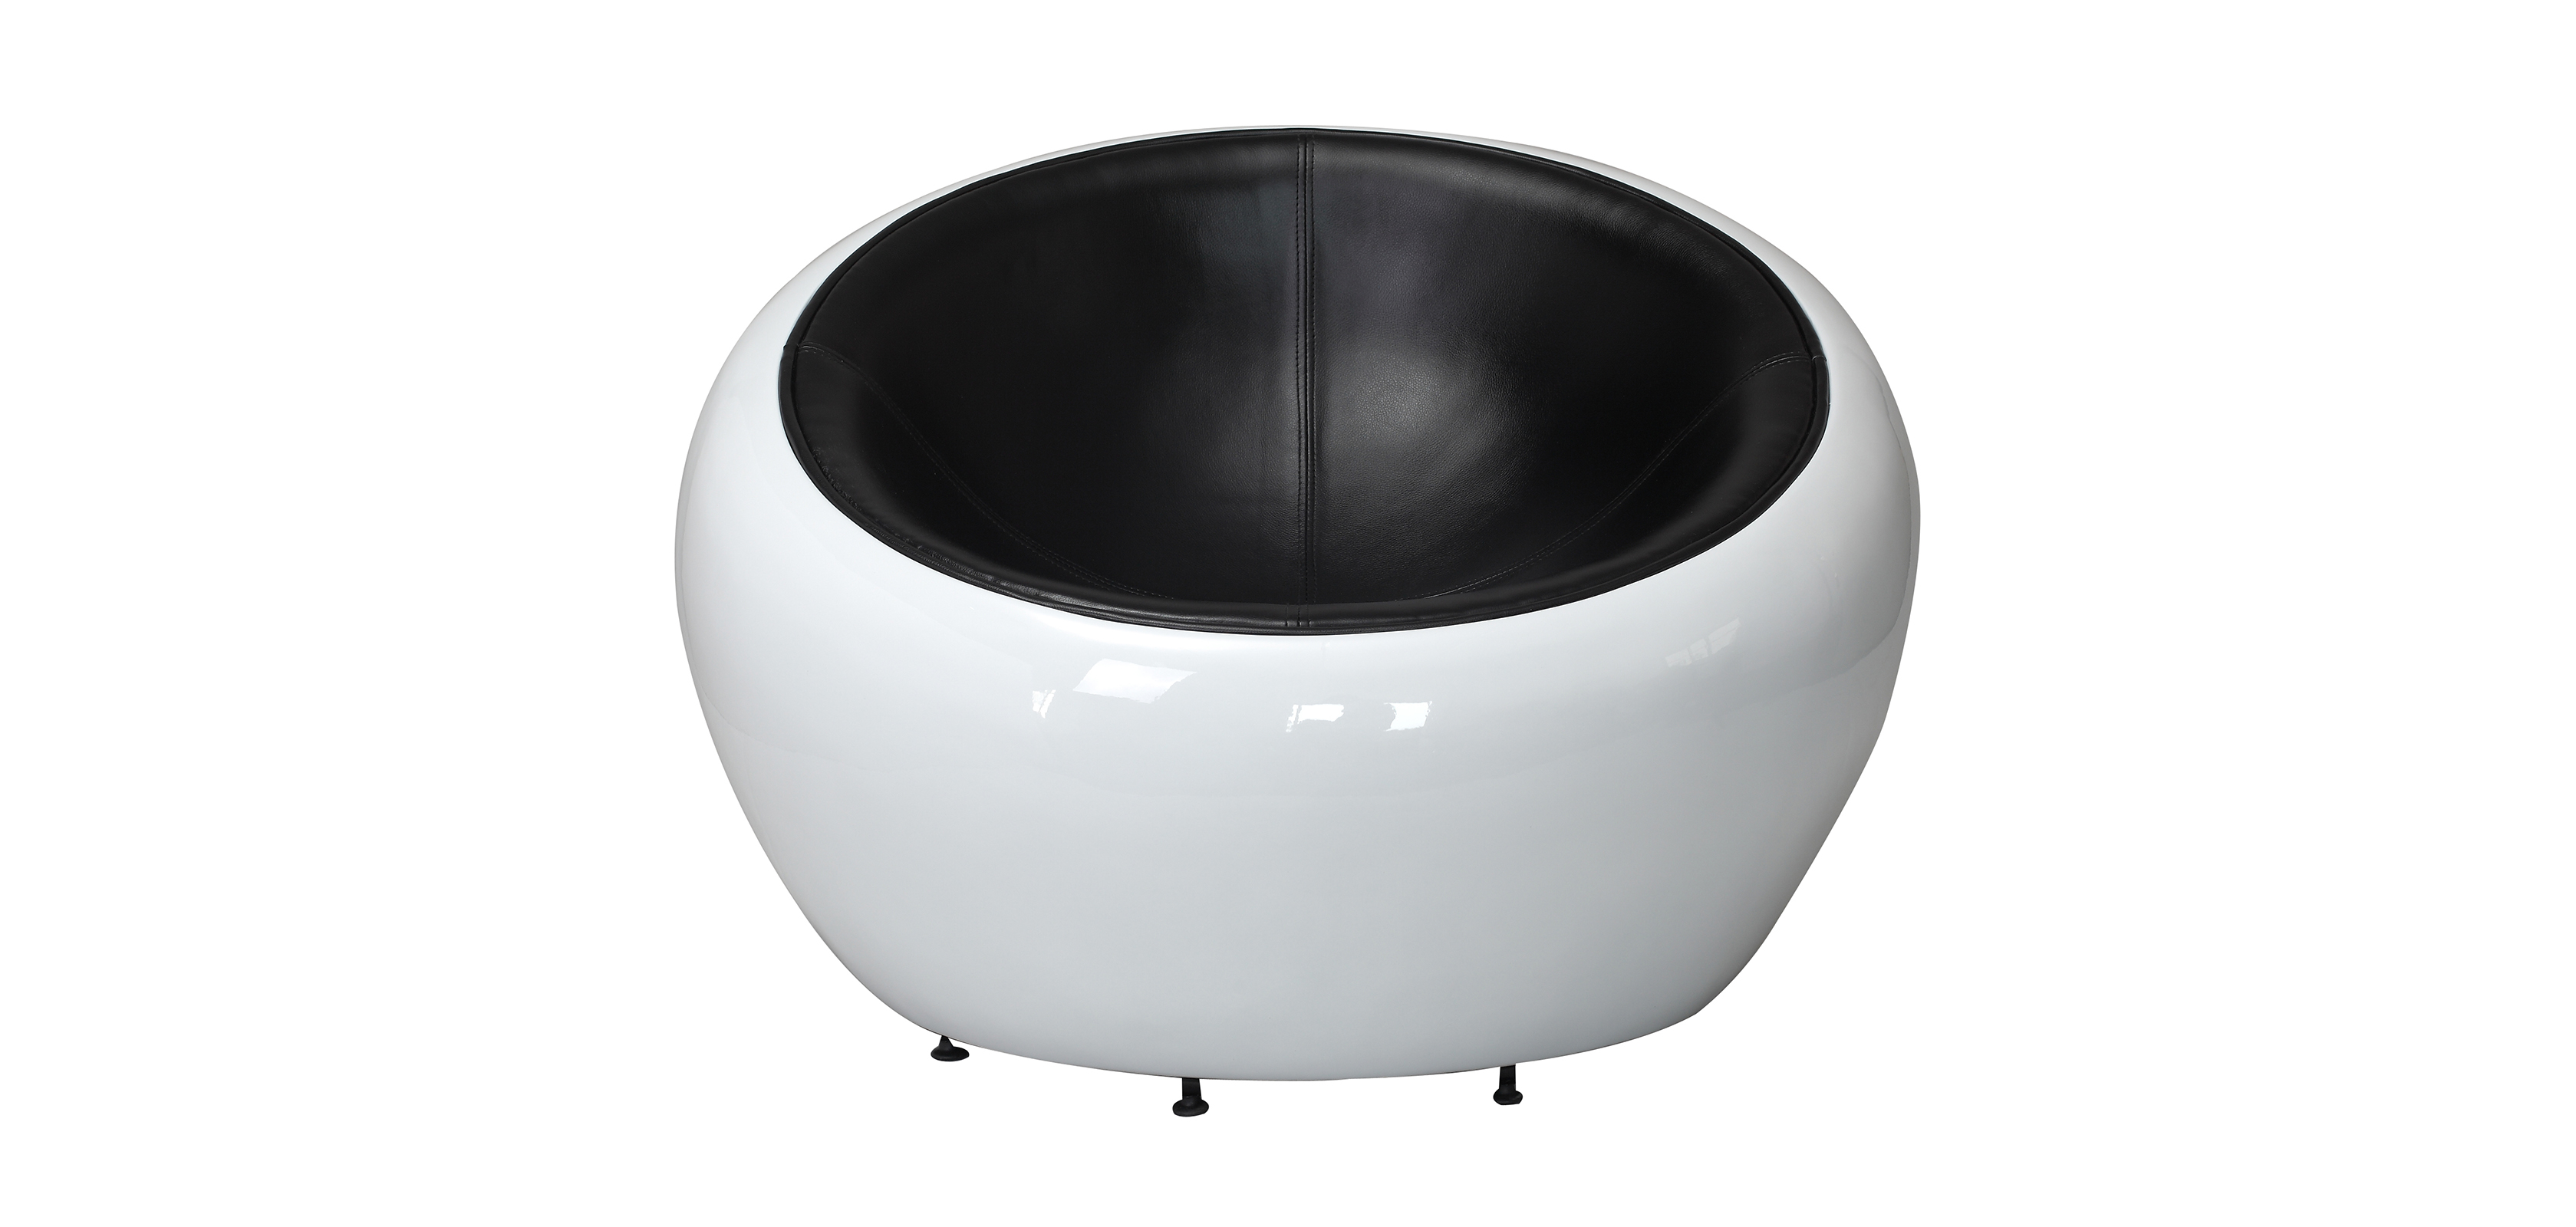 Relaxsessel Ikea Sessel Egg Chair Furmod Silla Egg Chair Hq With Sessel Egg